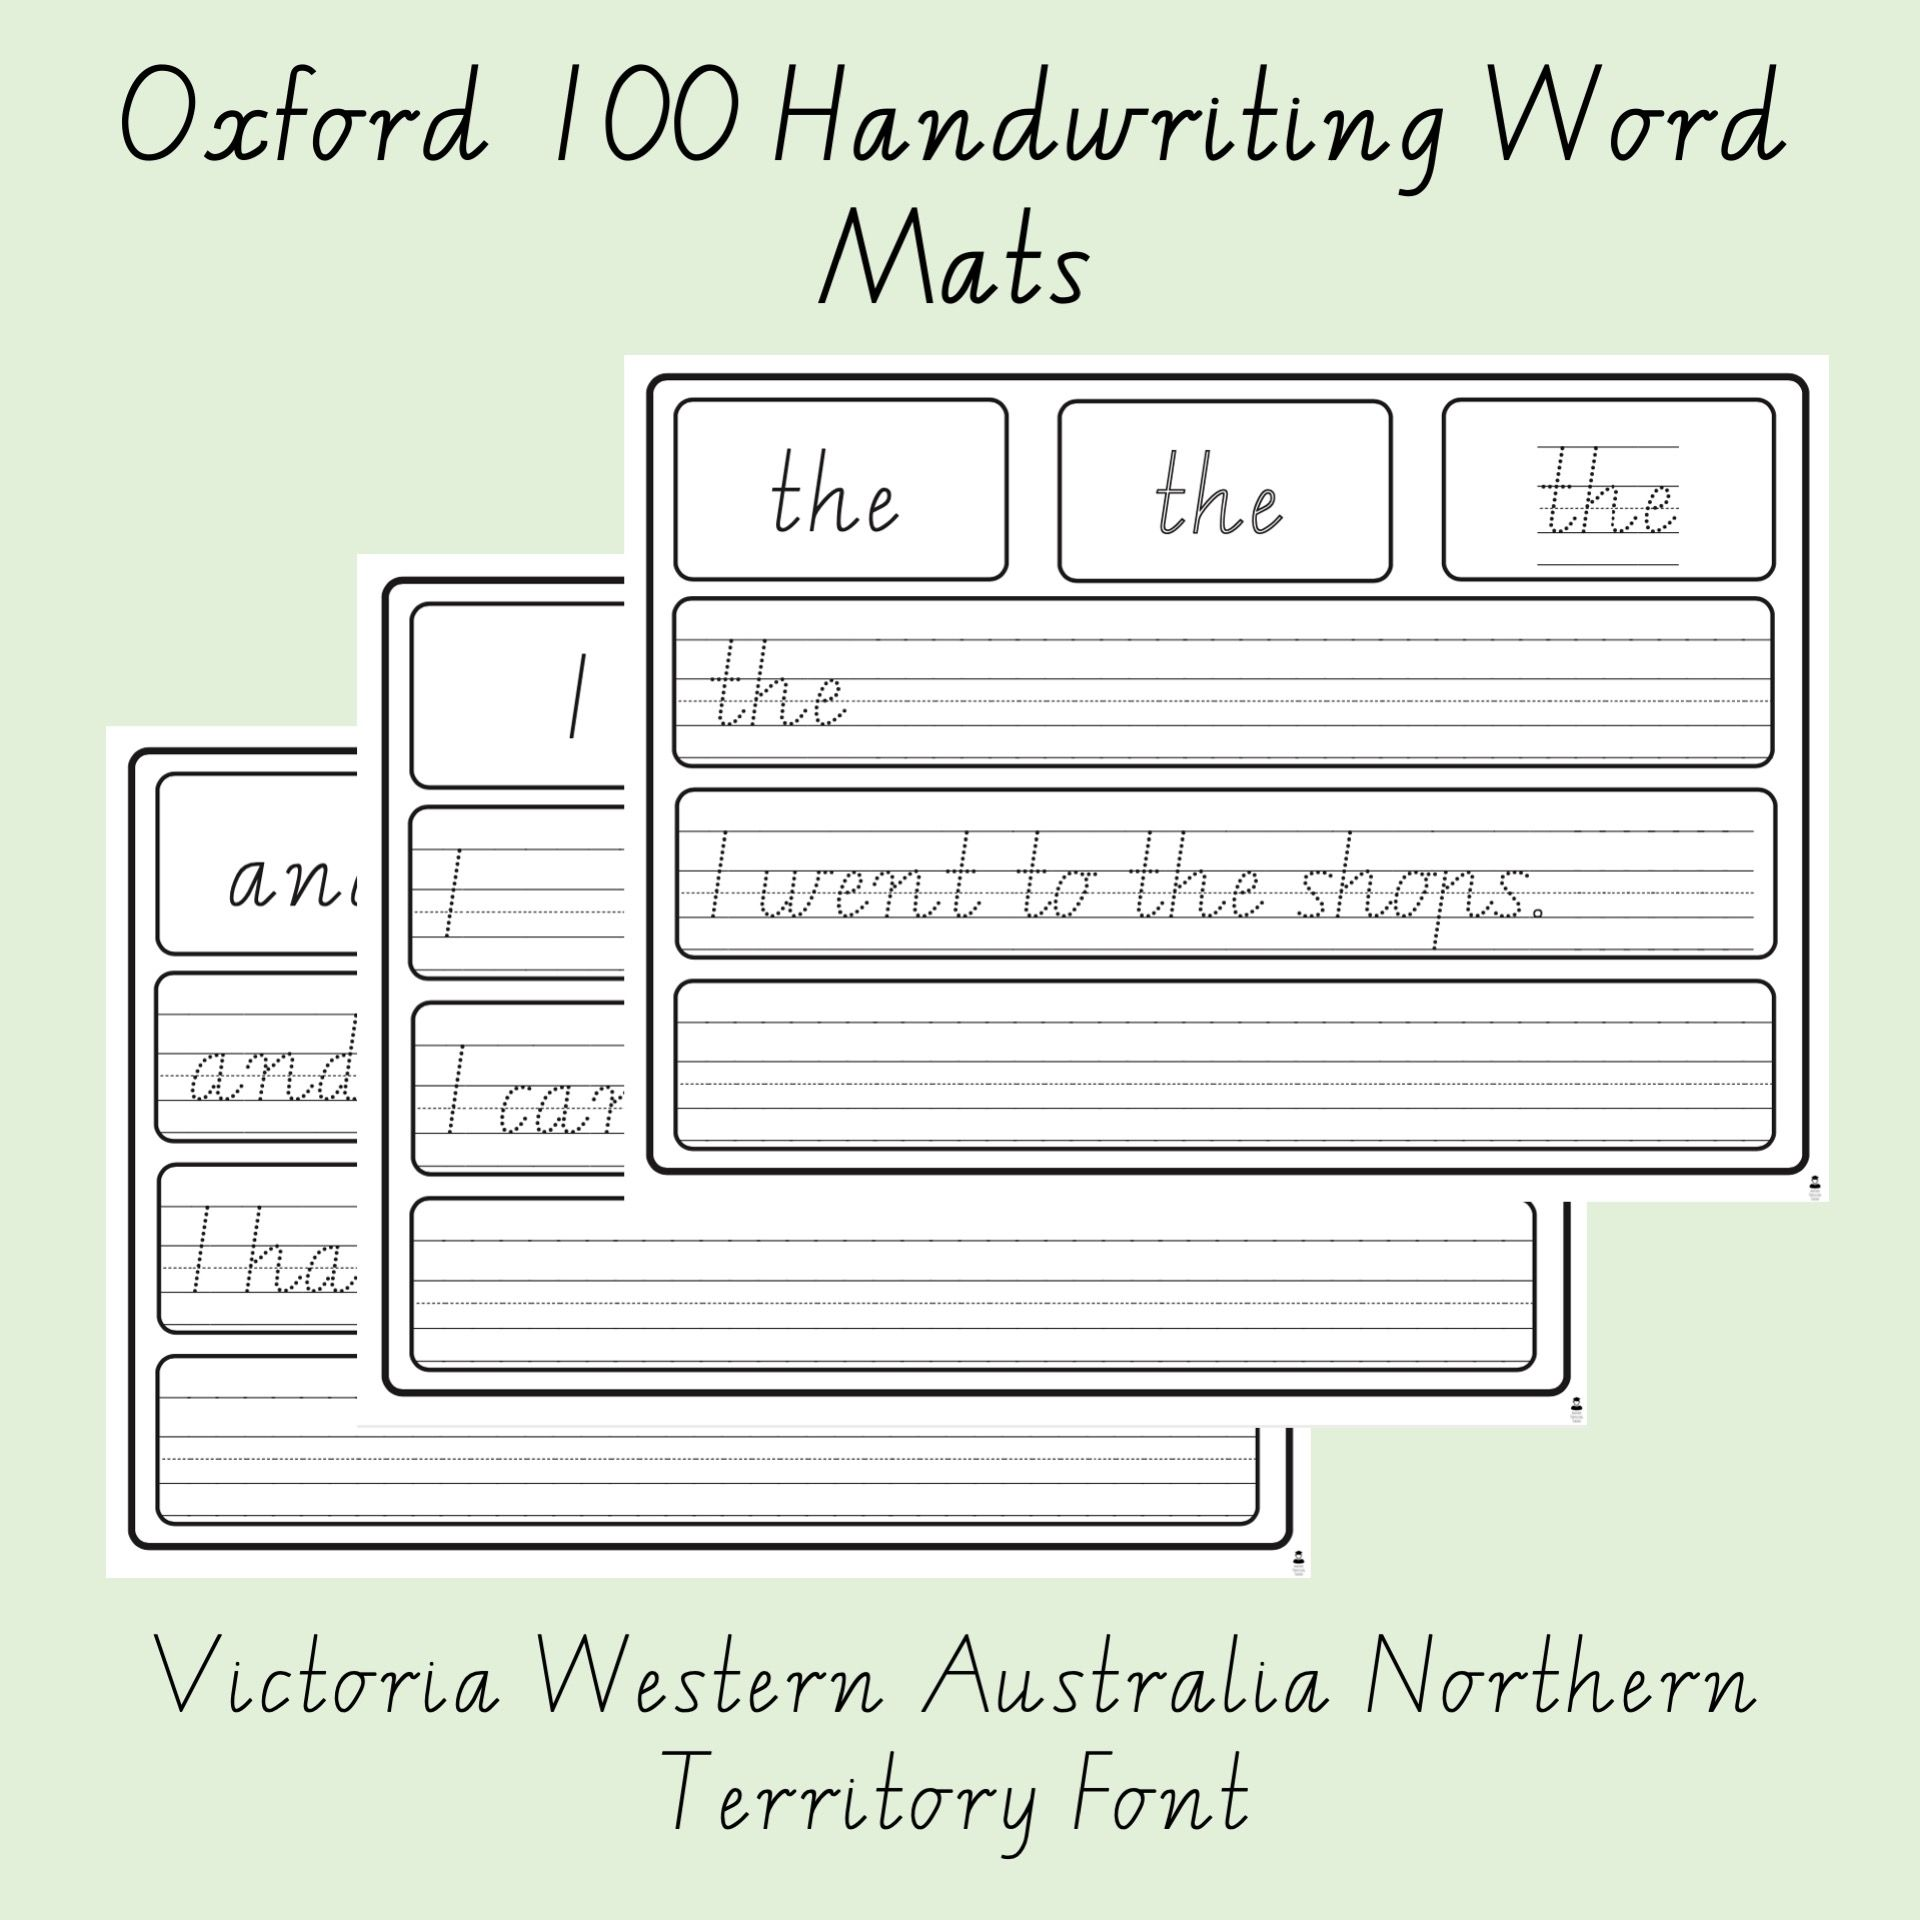 Victoria Wa Nt Oxford Word List High Frequency Words Writing Words Words [ 1920 x 1920 Pixel ]